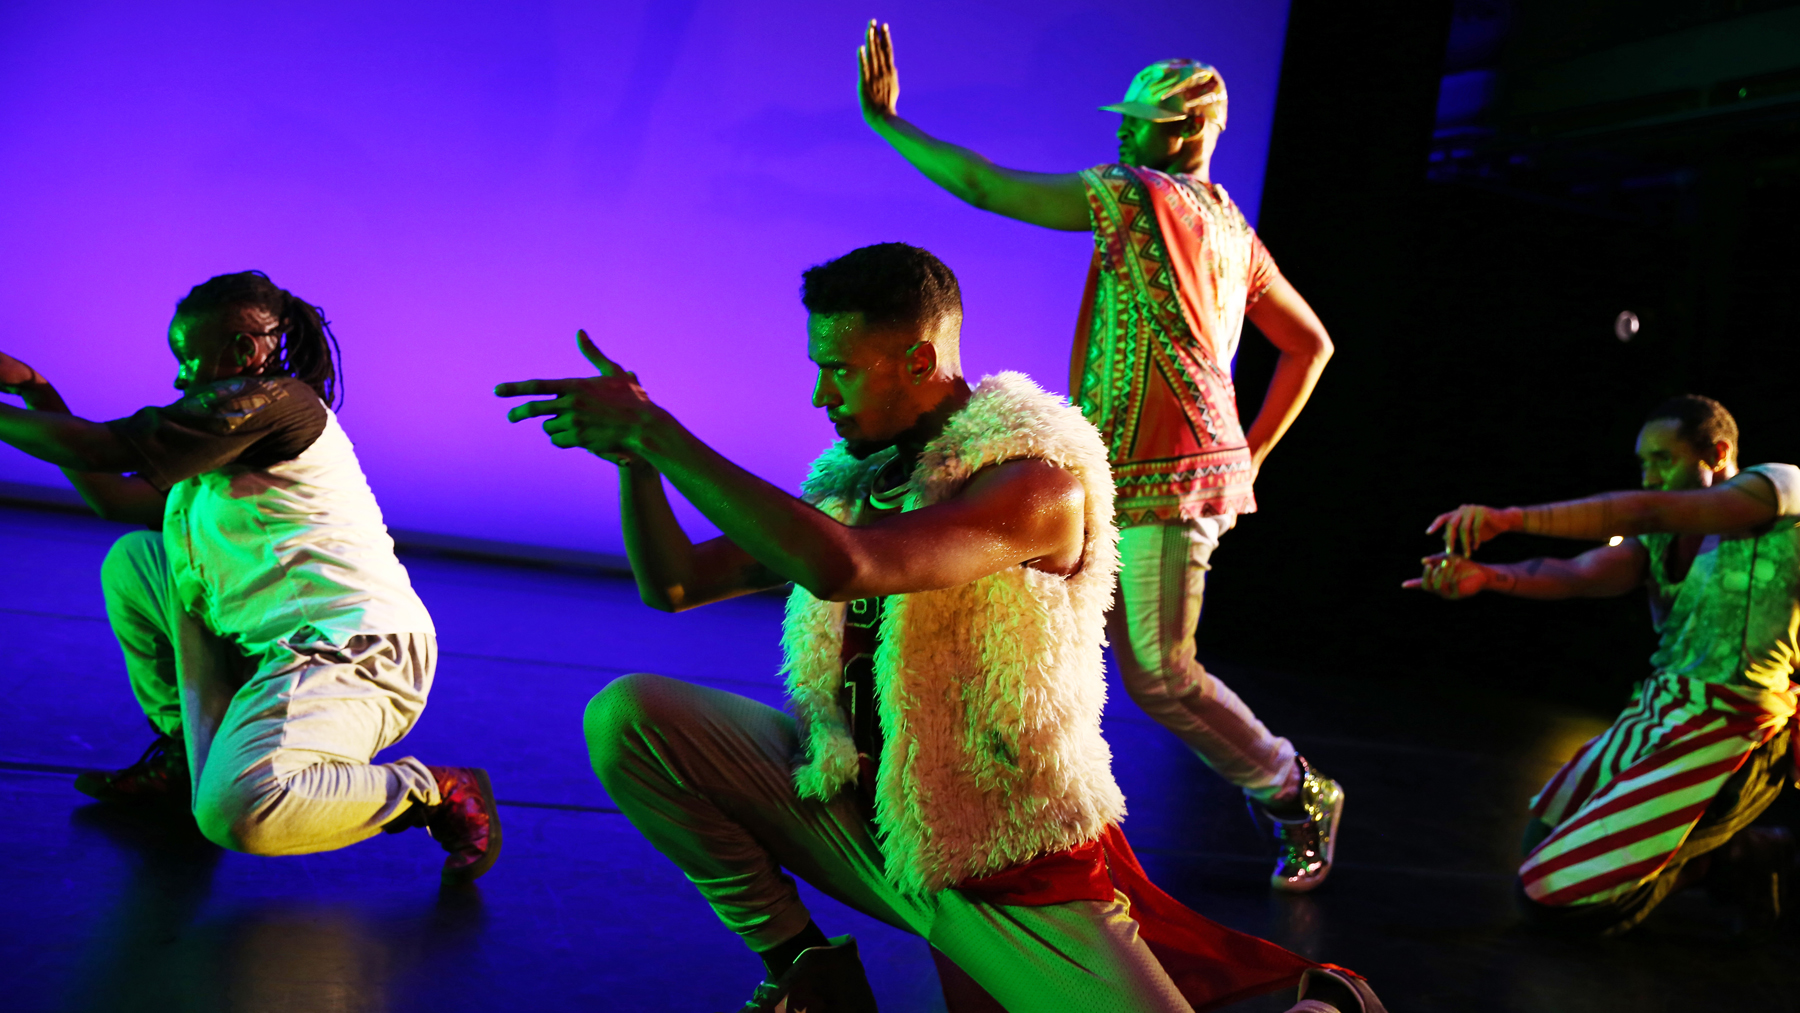 """Dancer-choreographer Cynthia Oliver's new work, """"Virago-Man Dem,"""" searches for an expansive view of black masculinity."""